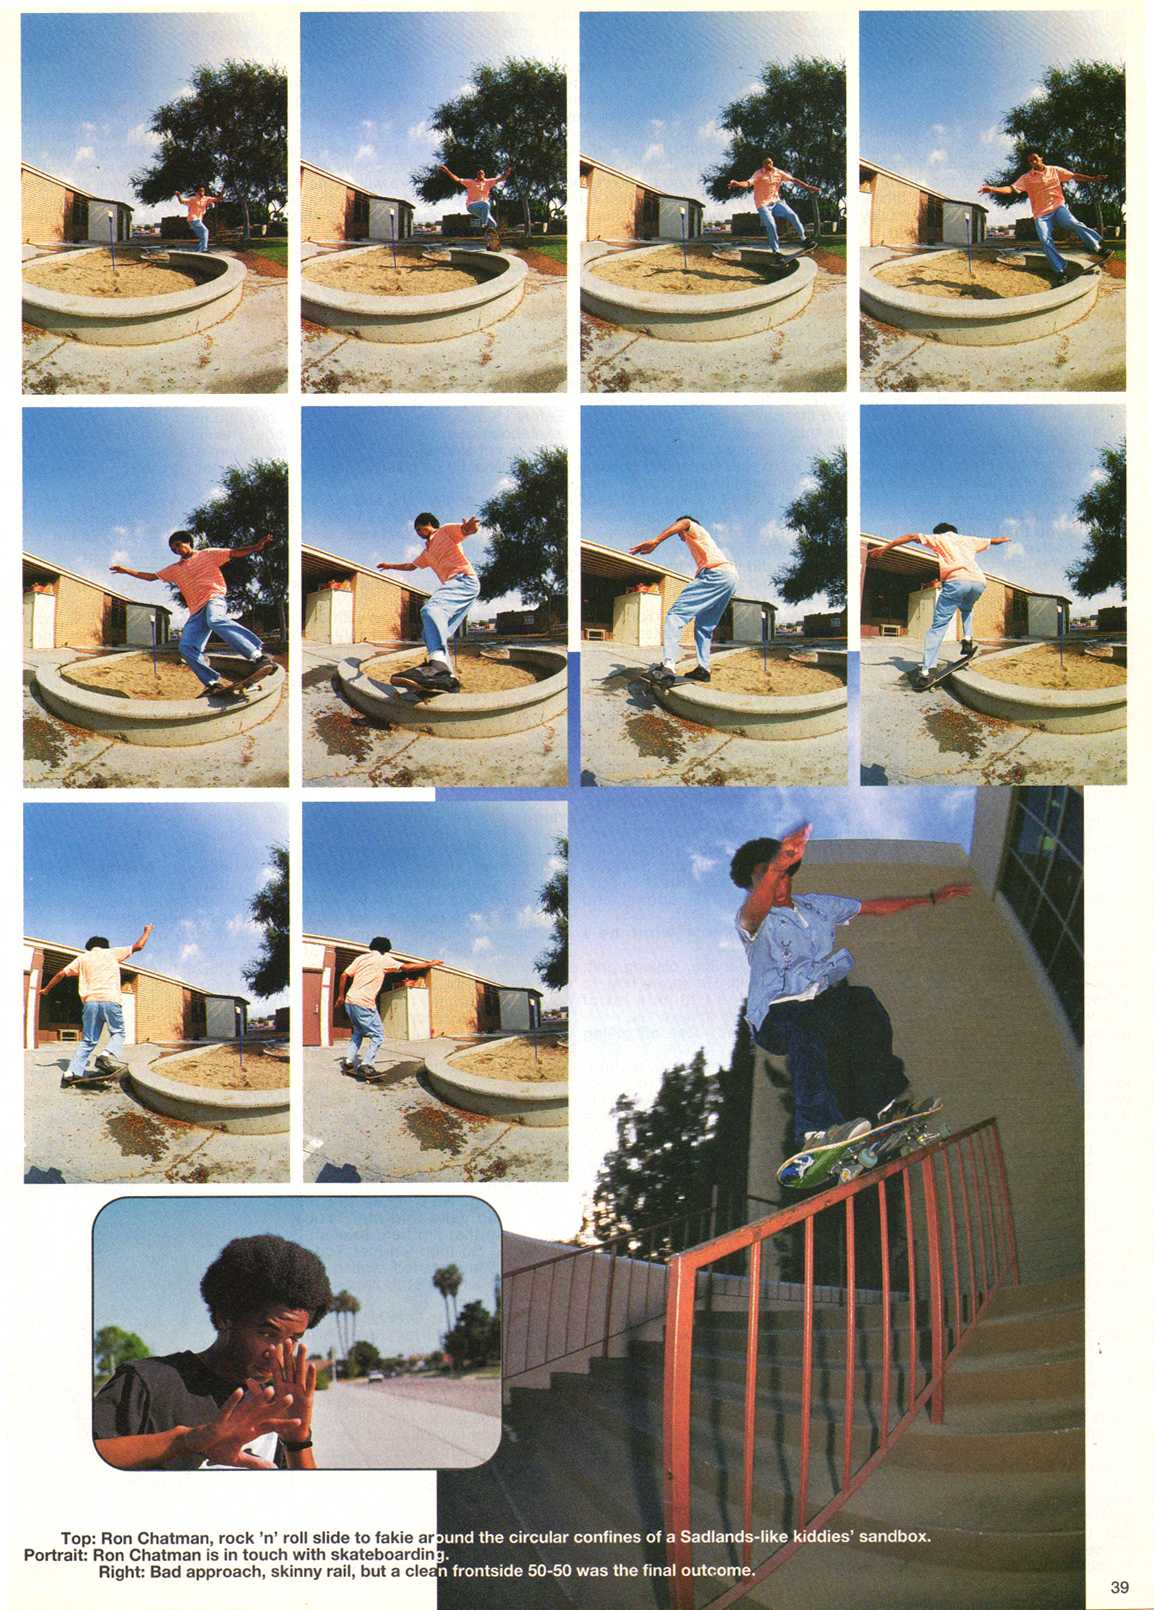 Ron-Chatman-sequences-board-rail-swift-March-93